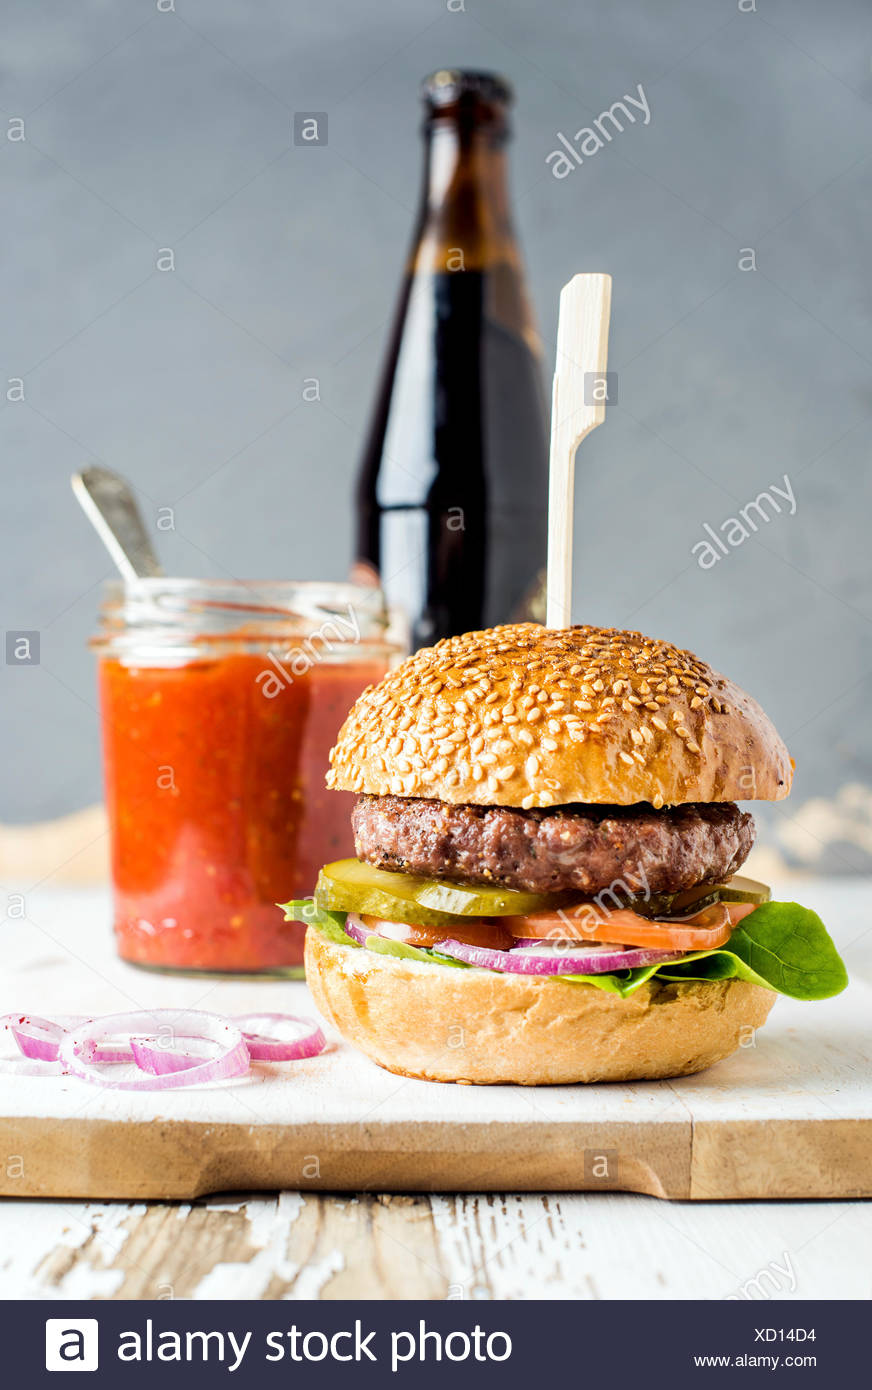 Fresh homemade burger on white wooden serving board with onion rings, salsa sauce and bottle of beer over white background, sele - Stock Image